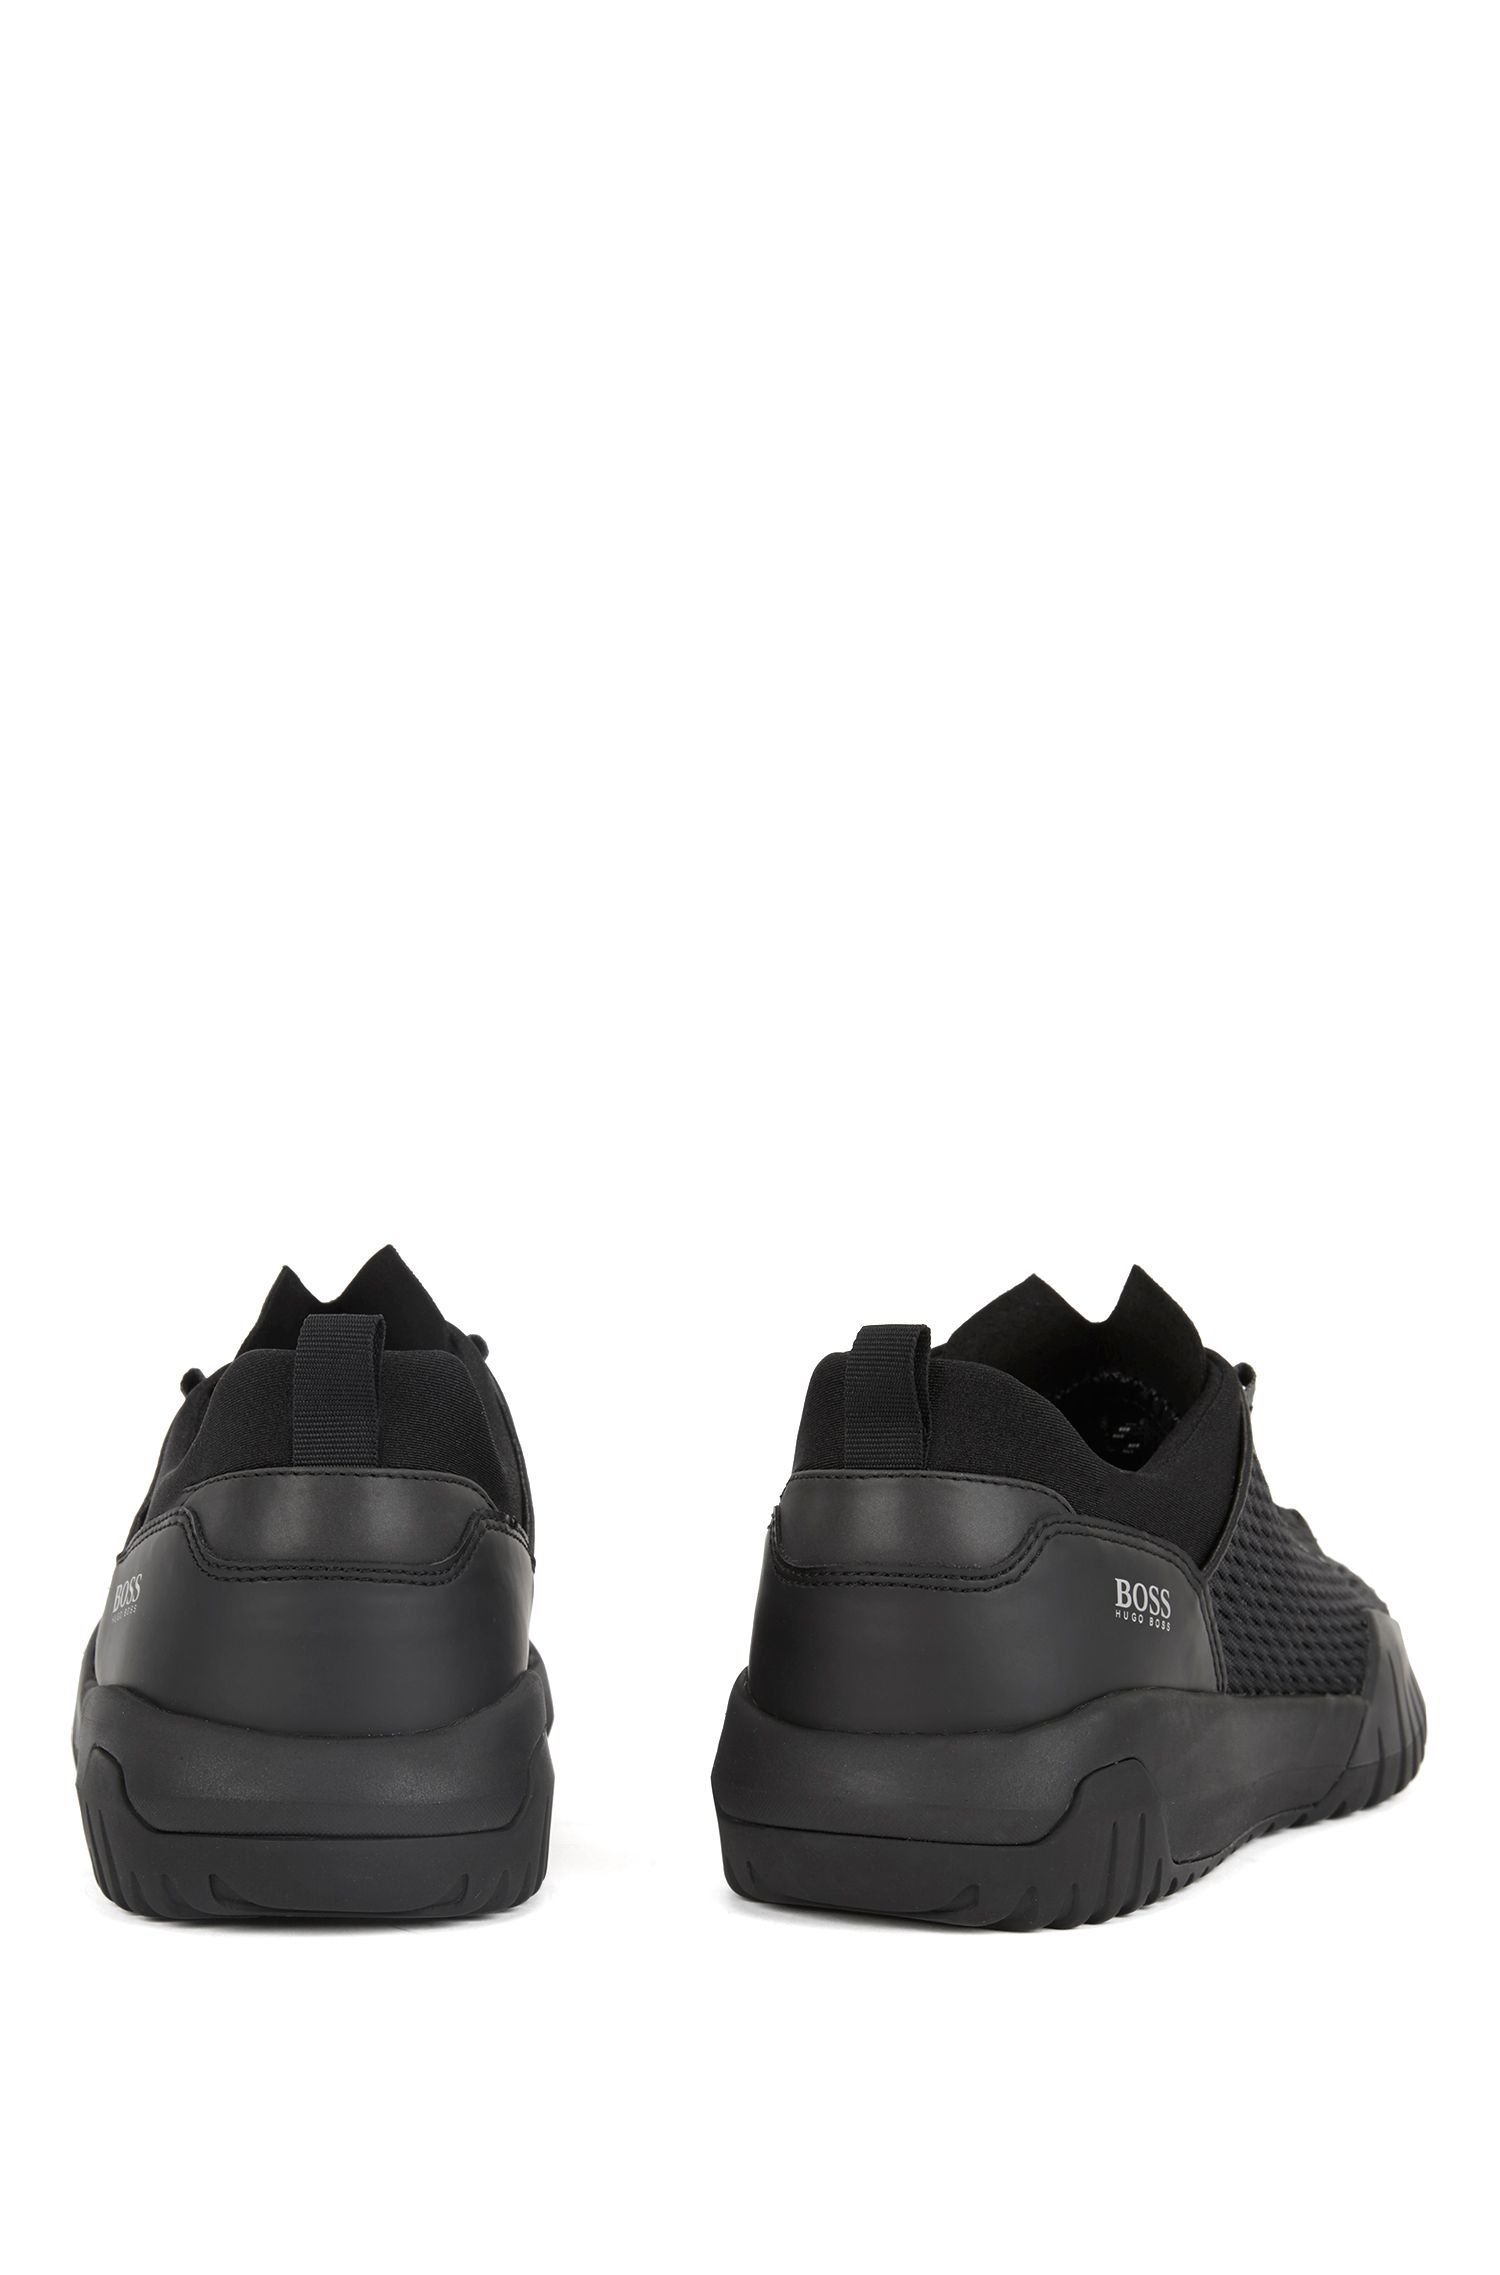 Hugo Boss - Running-inspired trainers with Strobel construction and reflective laces - 5